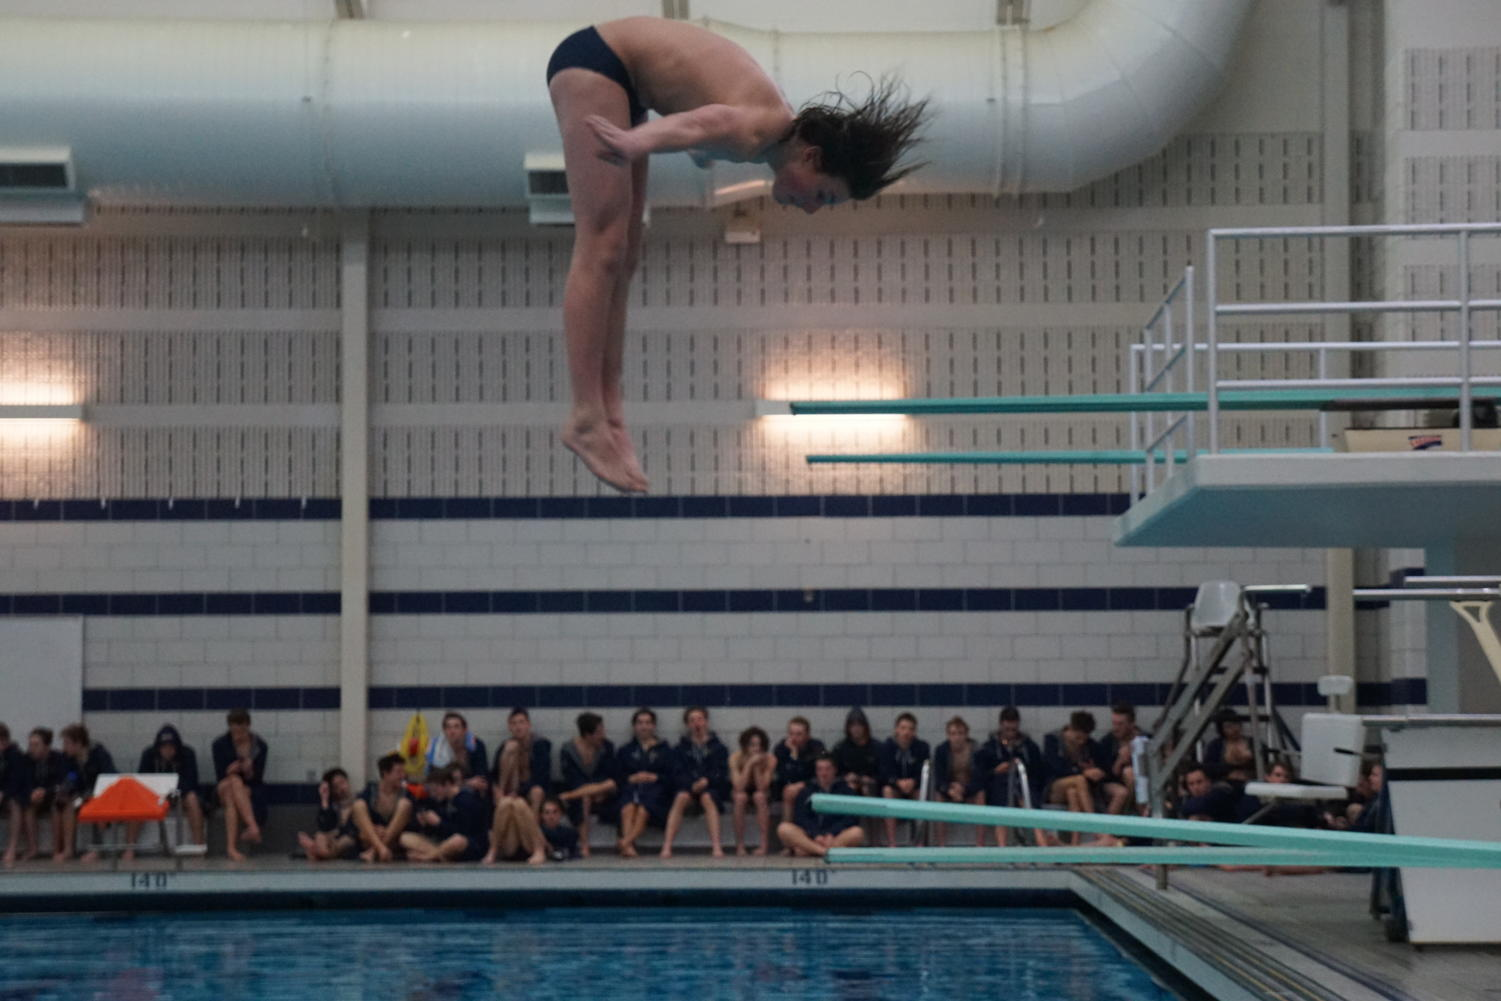 TAKING A DIVE: Malott executes a challenging dive during a meet. The junior brightens the squad's spirits with his energy that is often contagious for everyone around him. This also is noticeable in the style of Malott's leadership and personality.